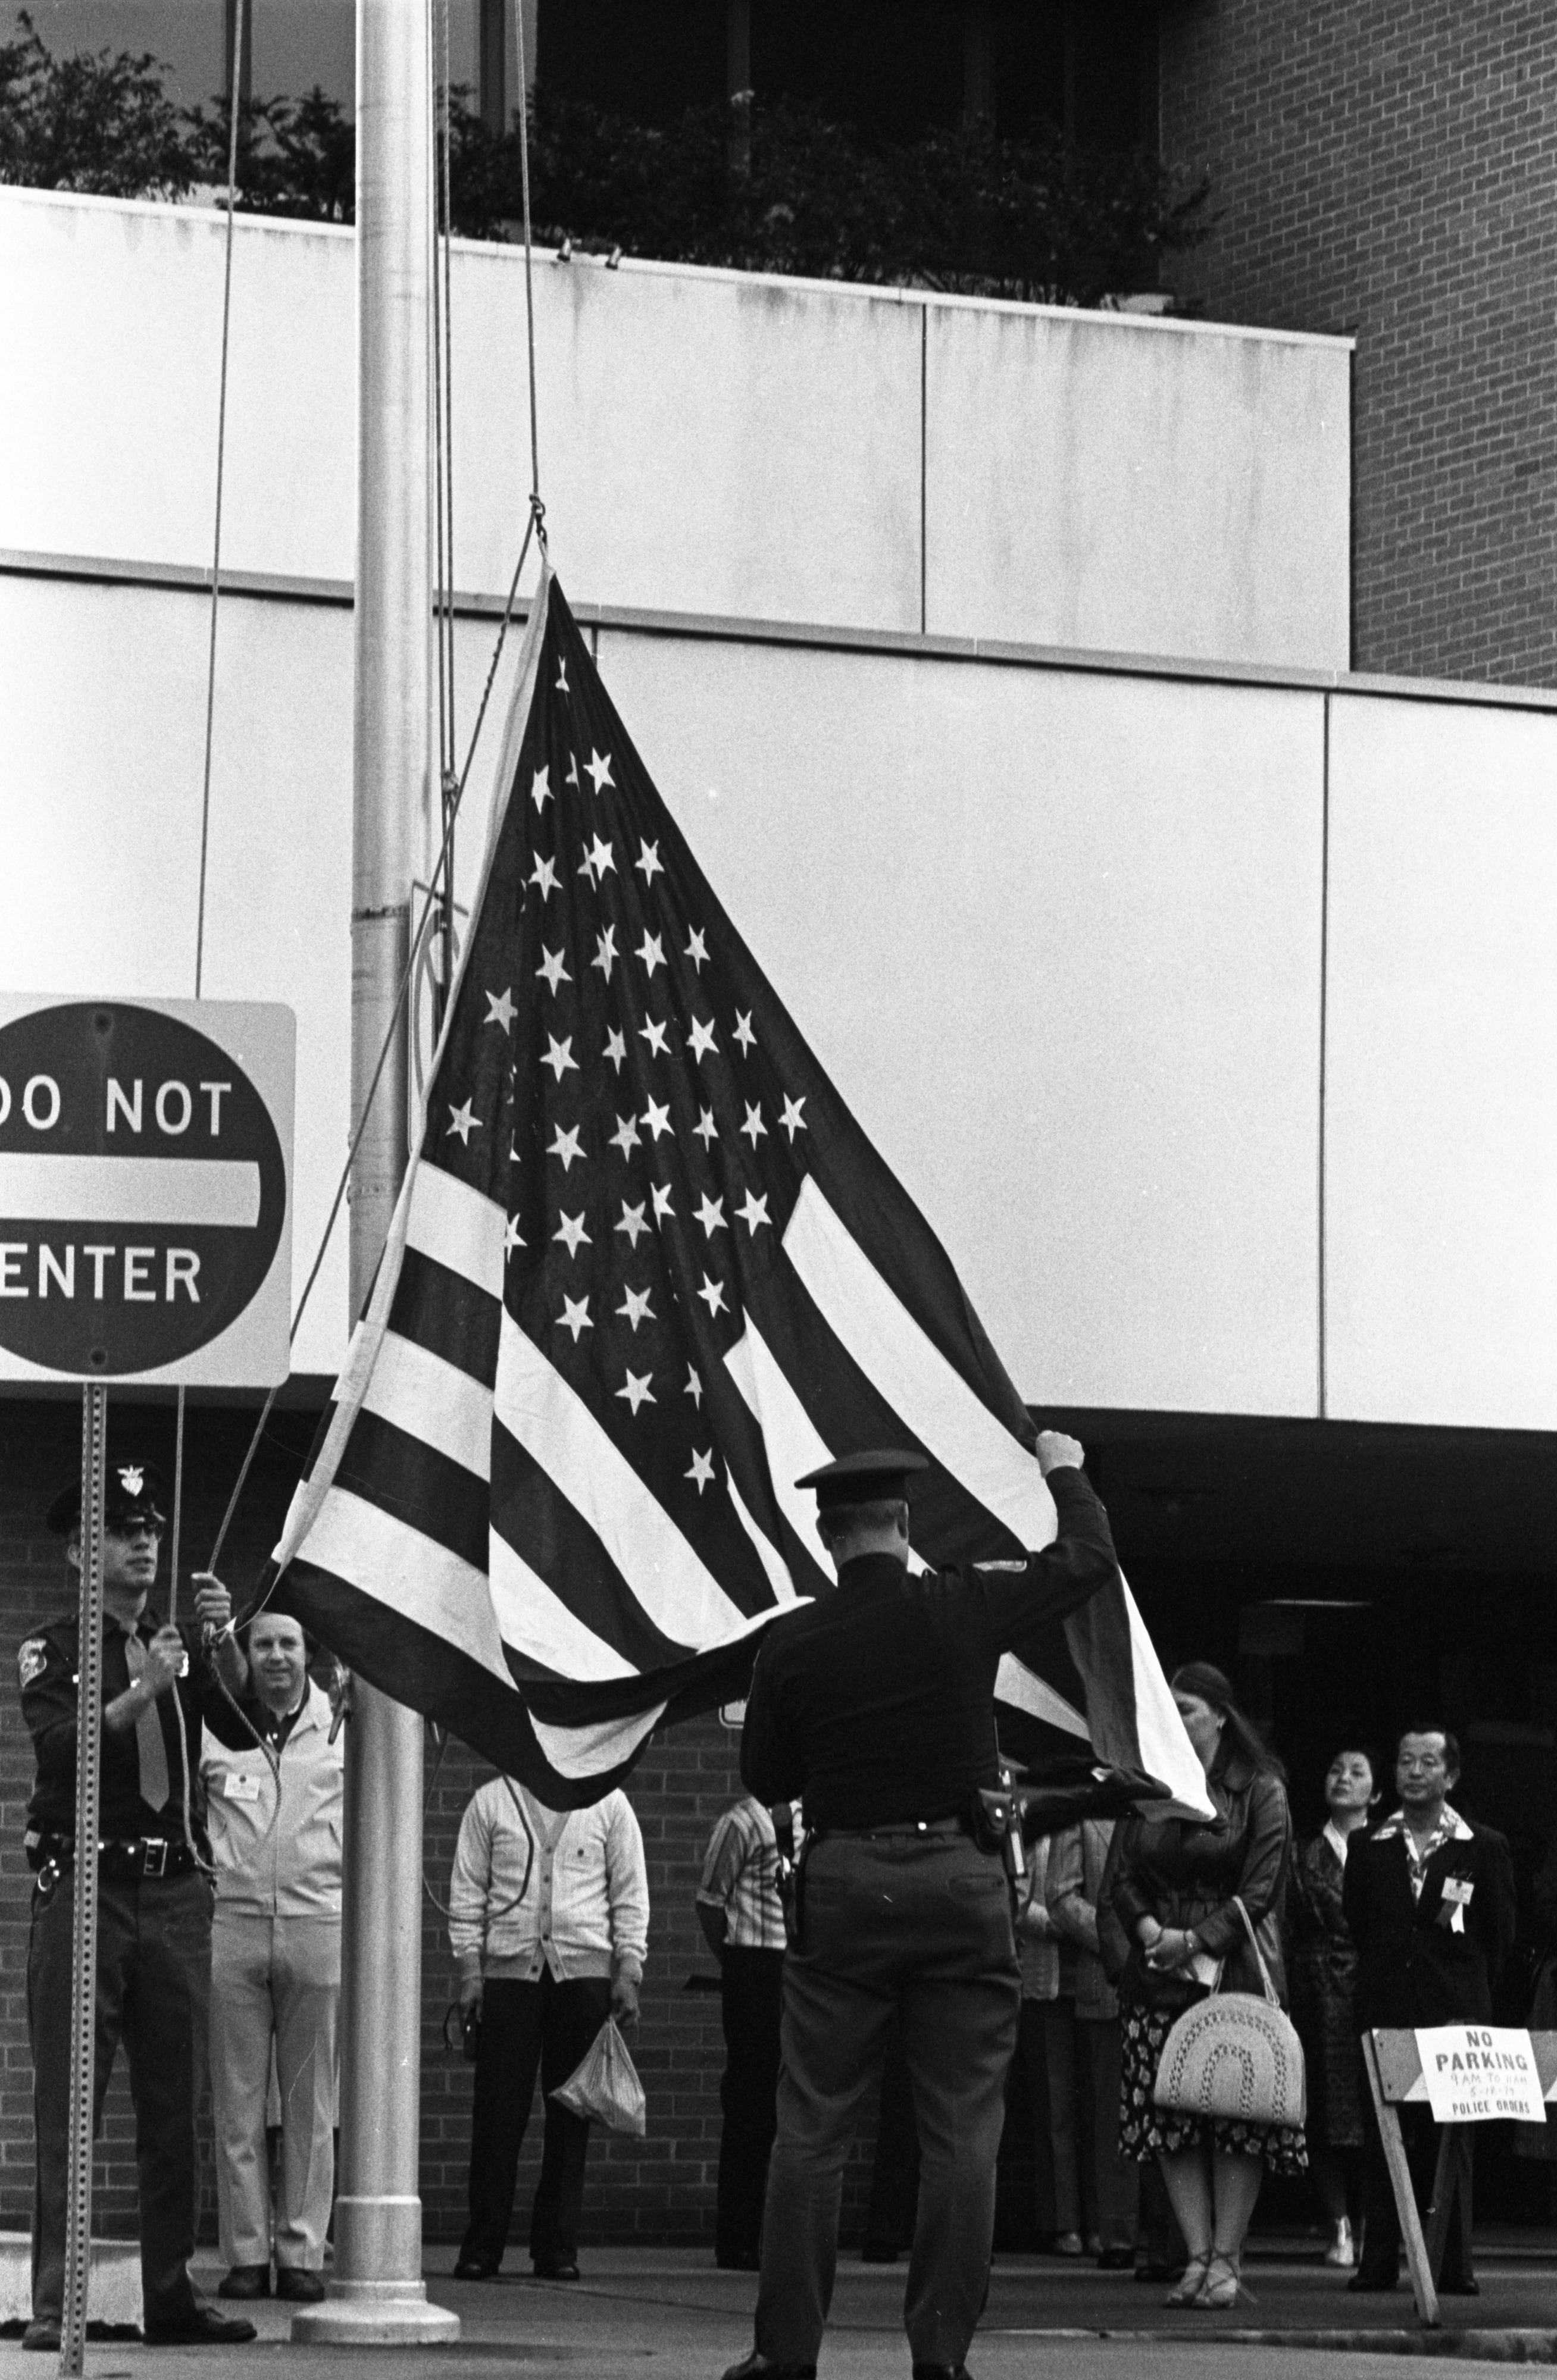 Ann Arbor Police Get Ready To Raise American Flag During Ceremony At City Hall, May 1979 image